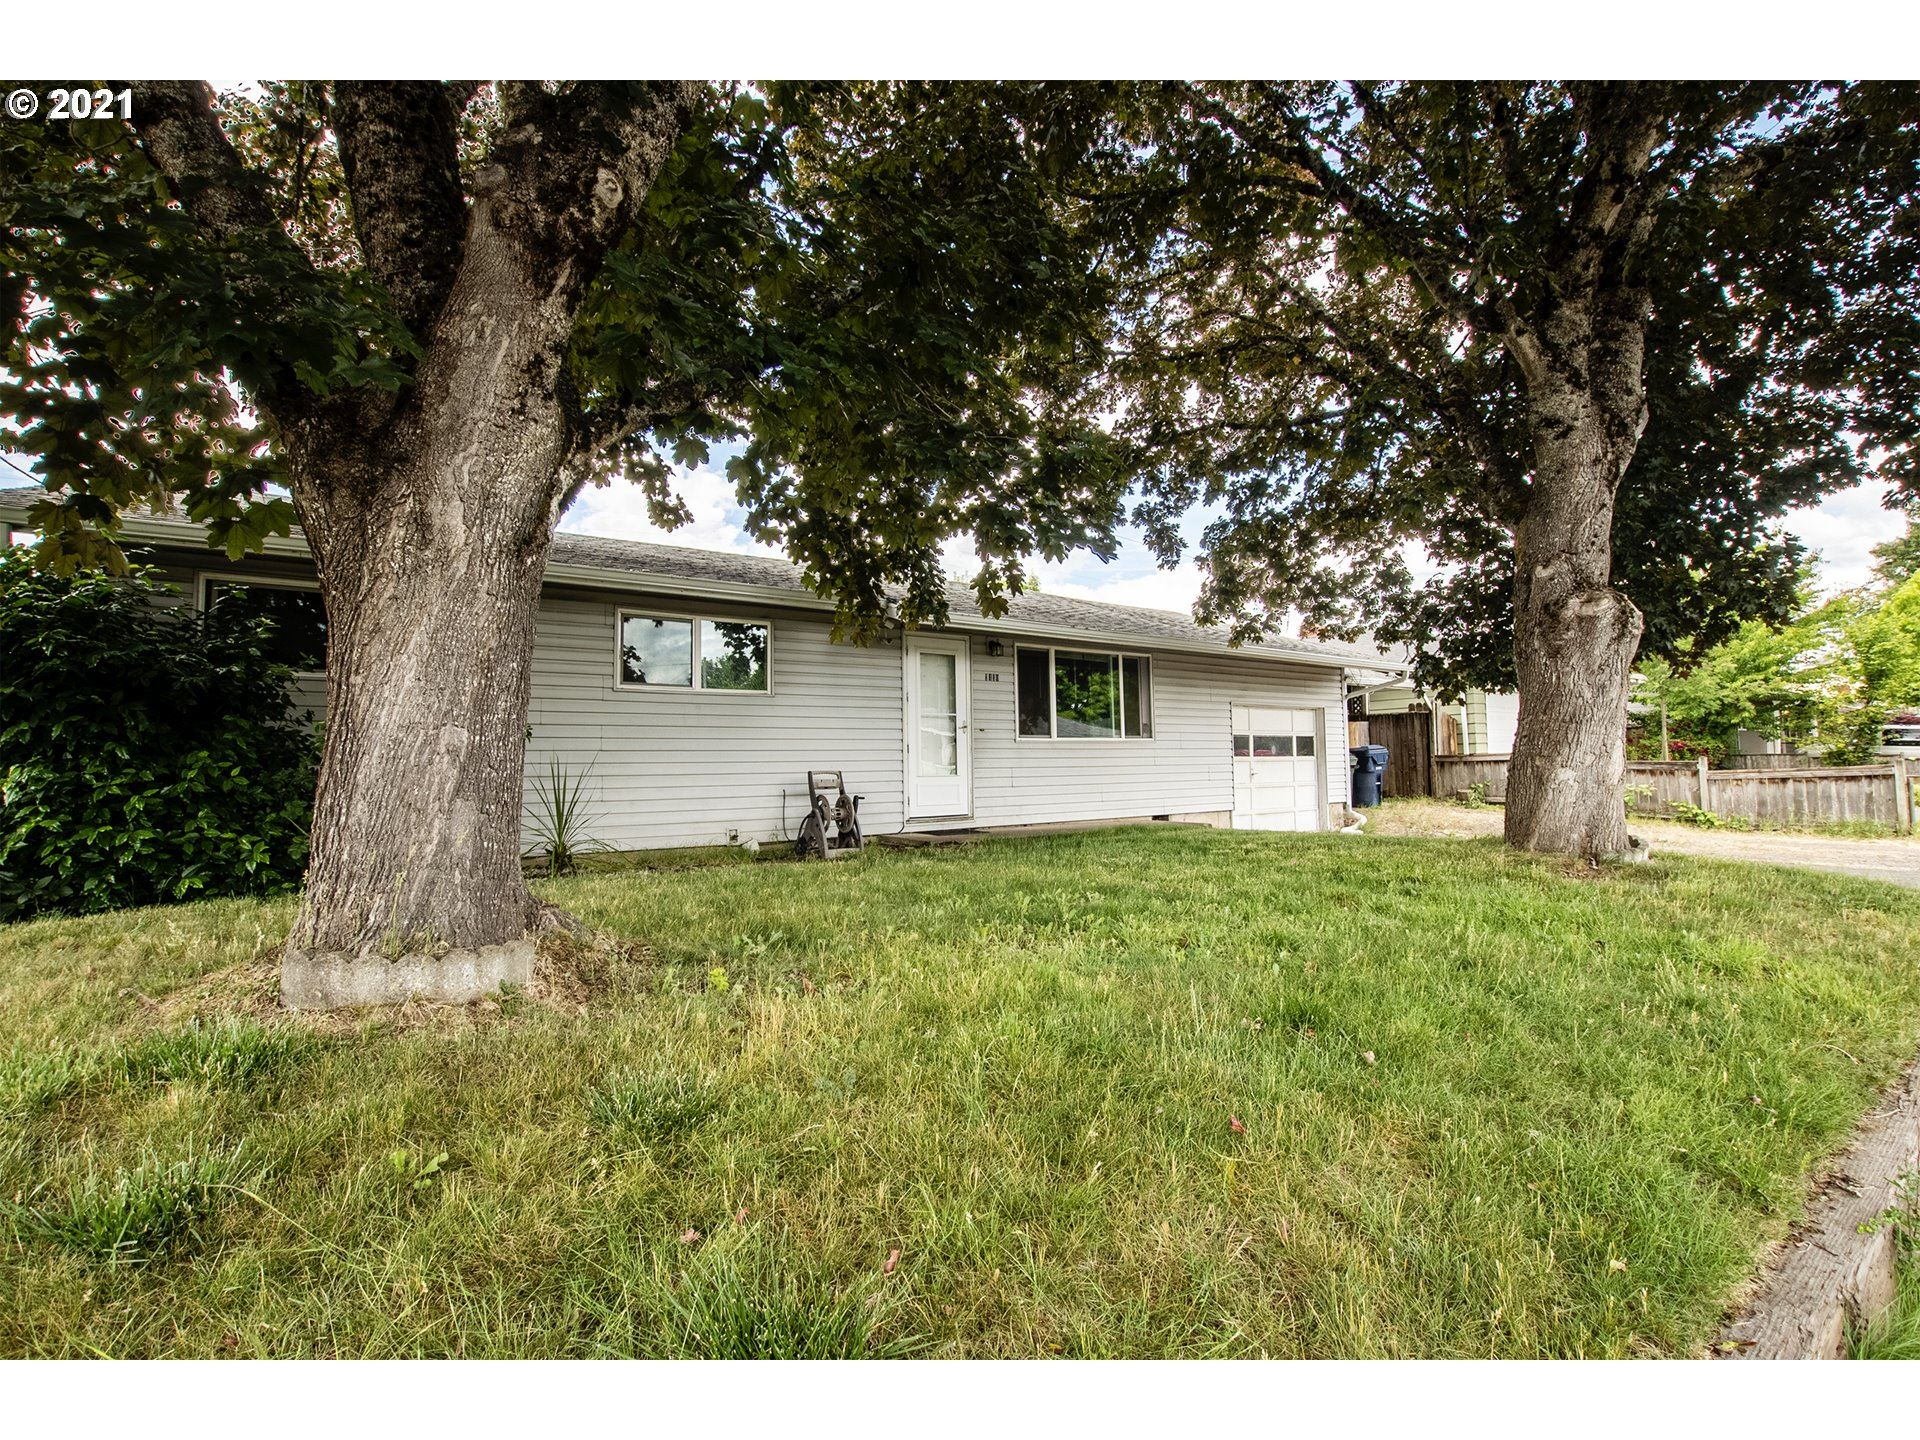 Photo for 1410 W QUINALT ST, Springfield, OR 97477 (MLS # 21478616)